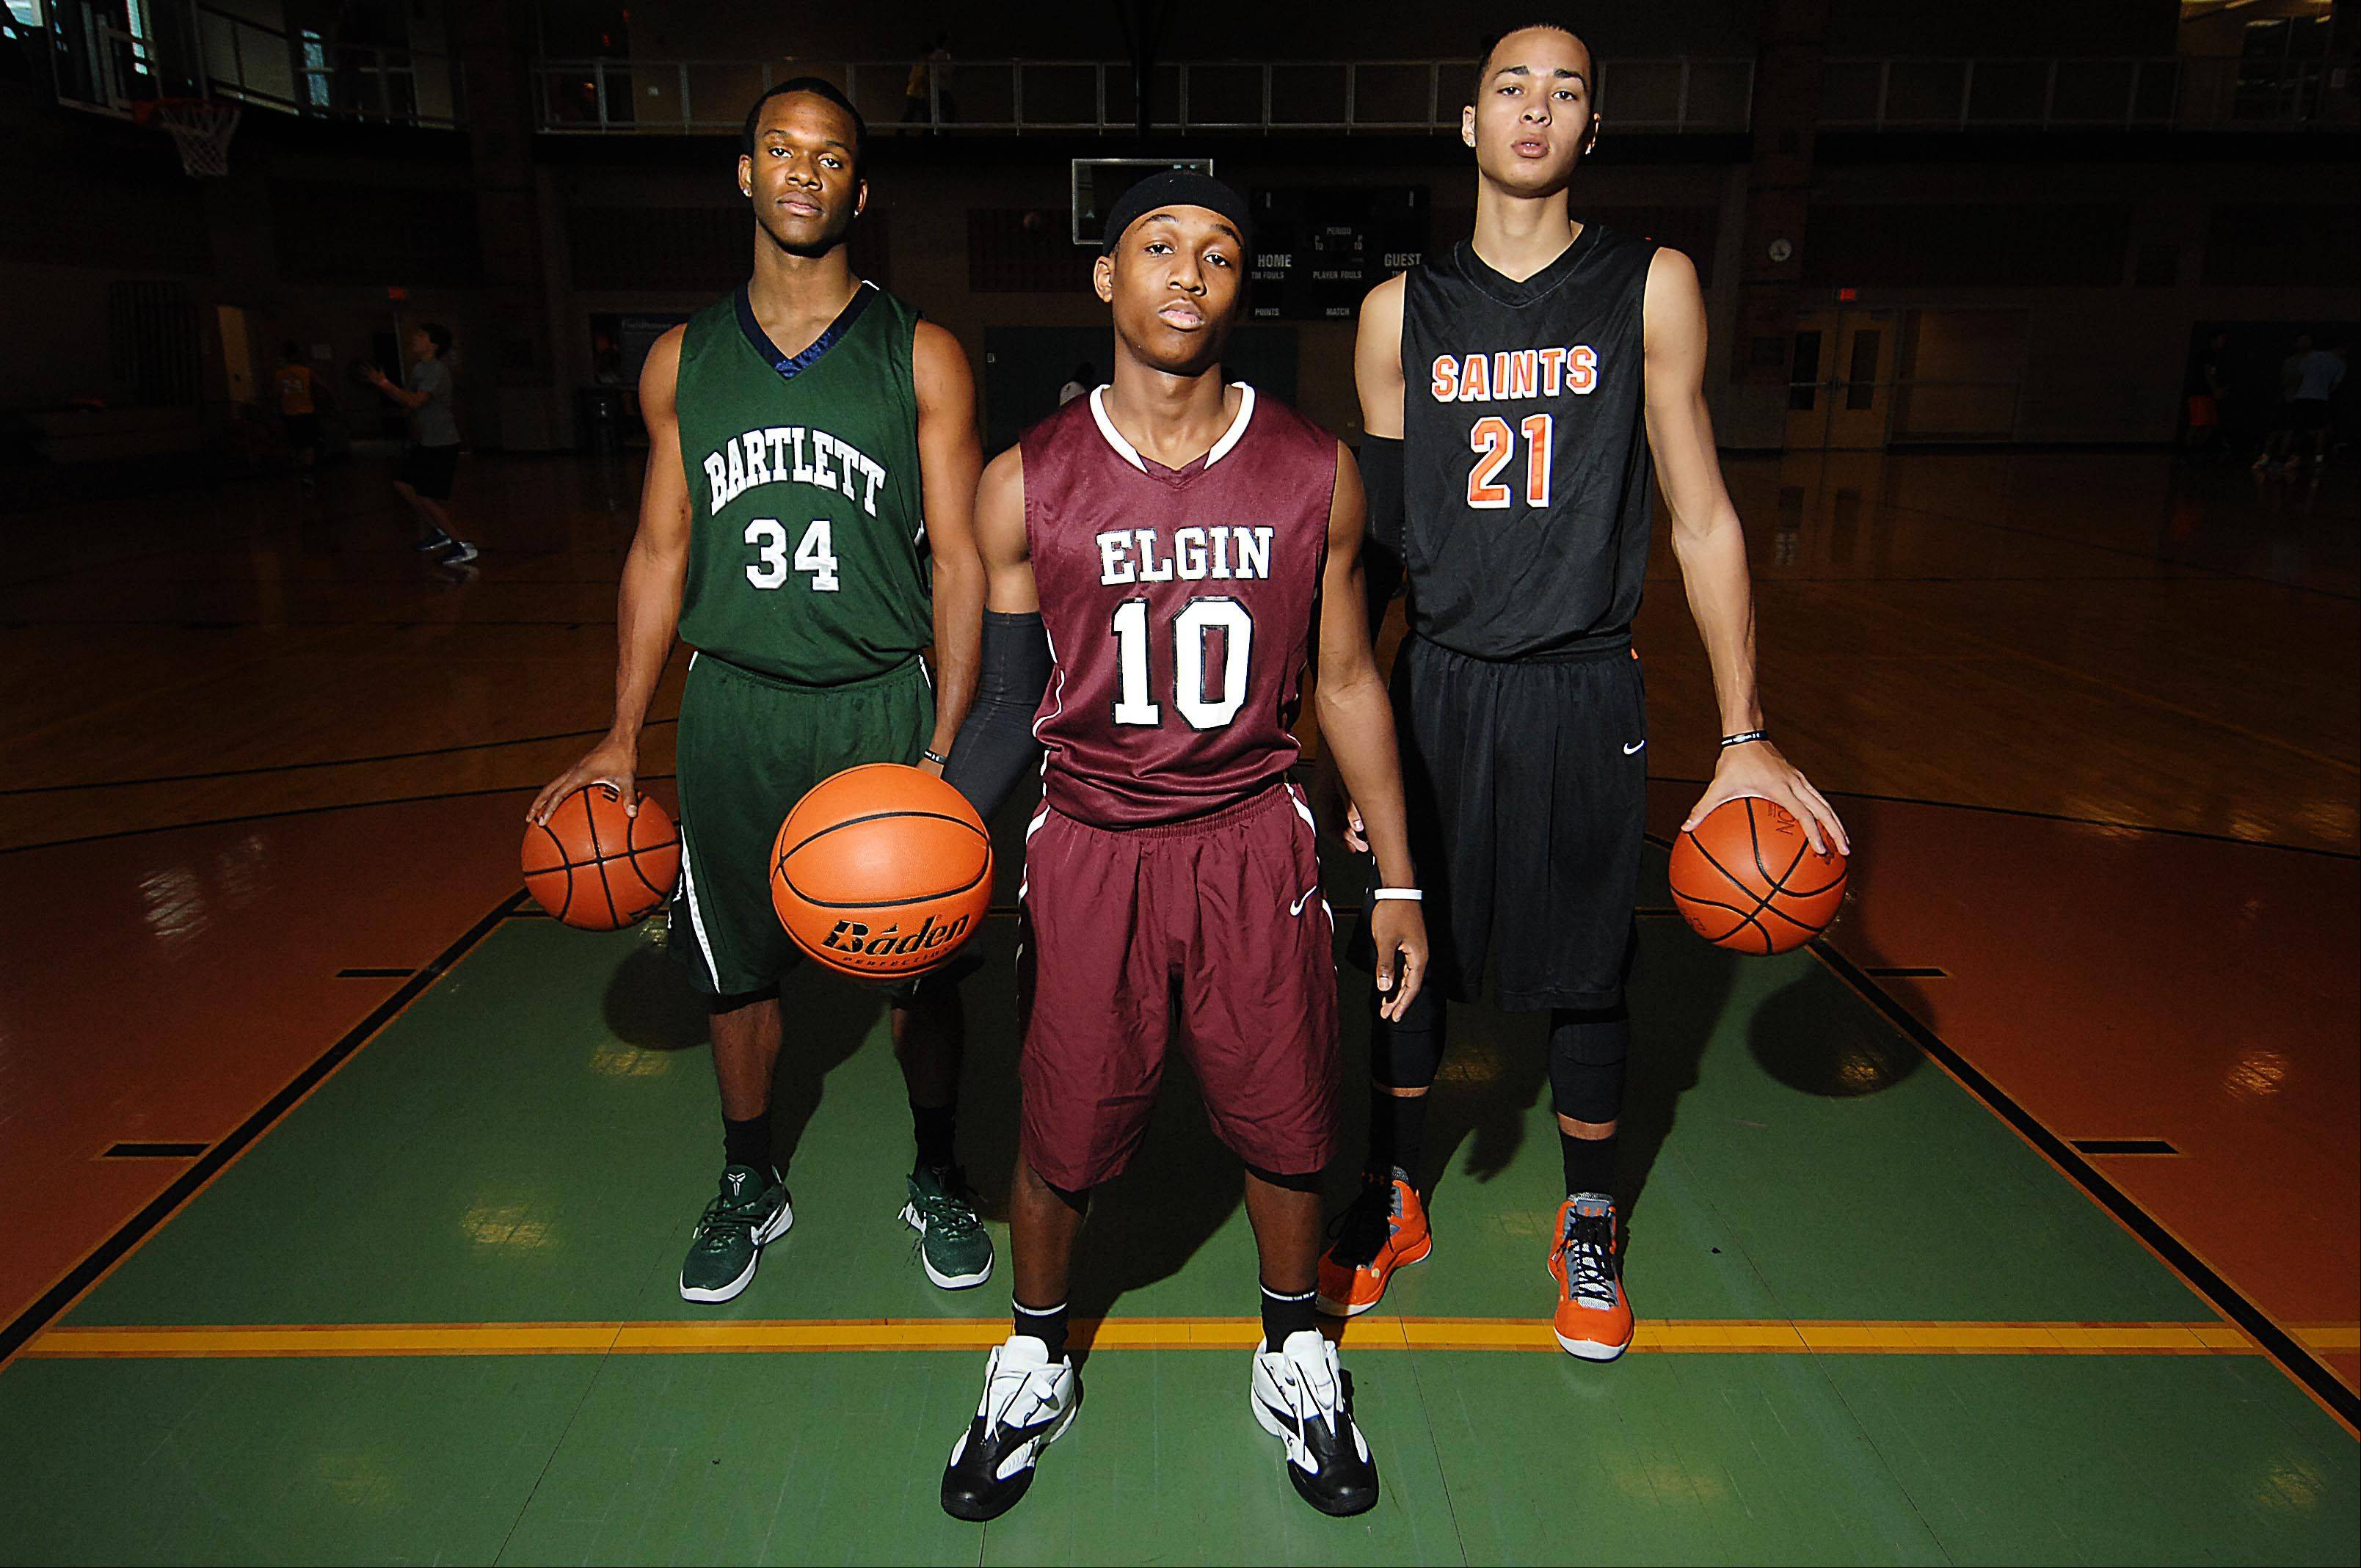 Lance Whitaker of Bartlett High School, Arie Williams of Elgin High School, and Kendall Stephens of St. Charles East High School, are AAU teammates.